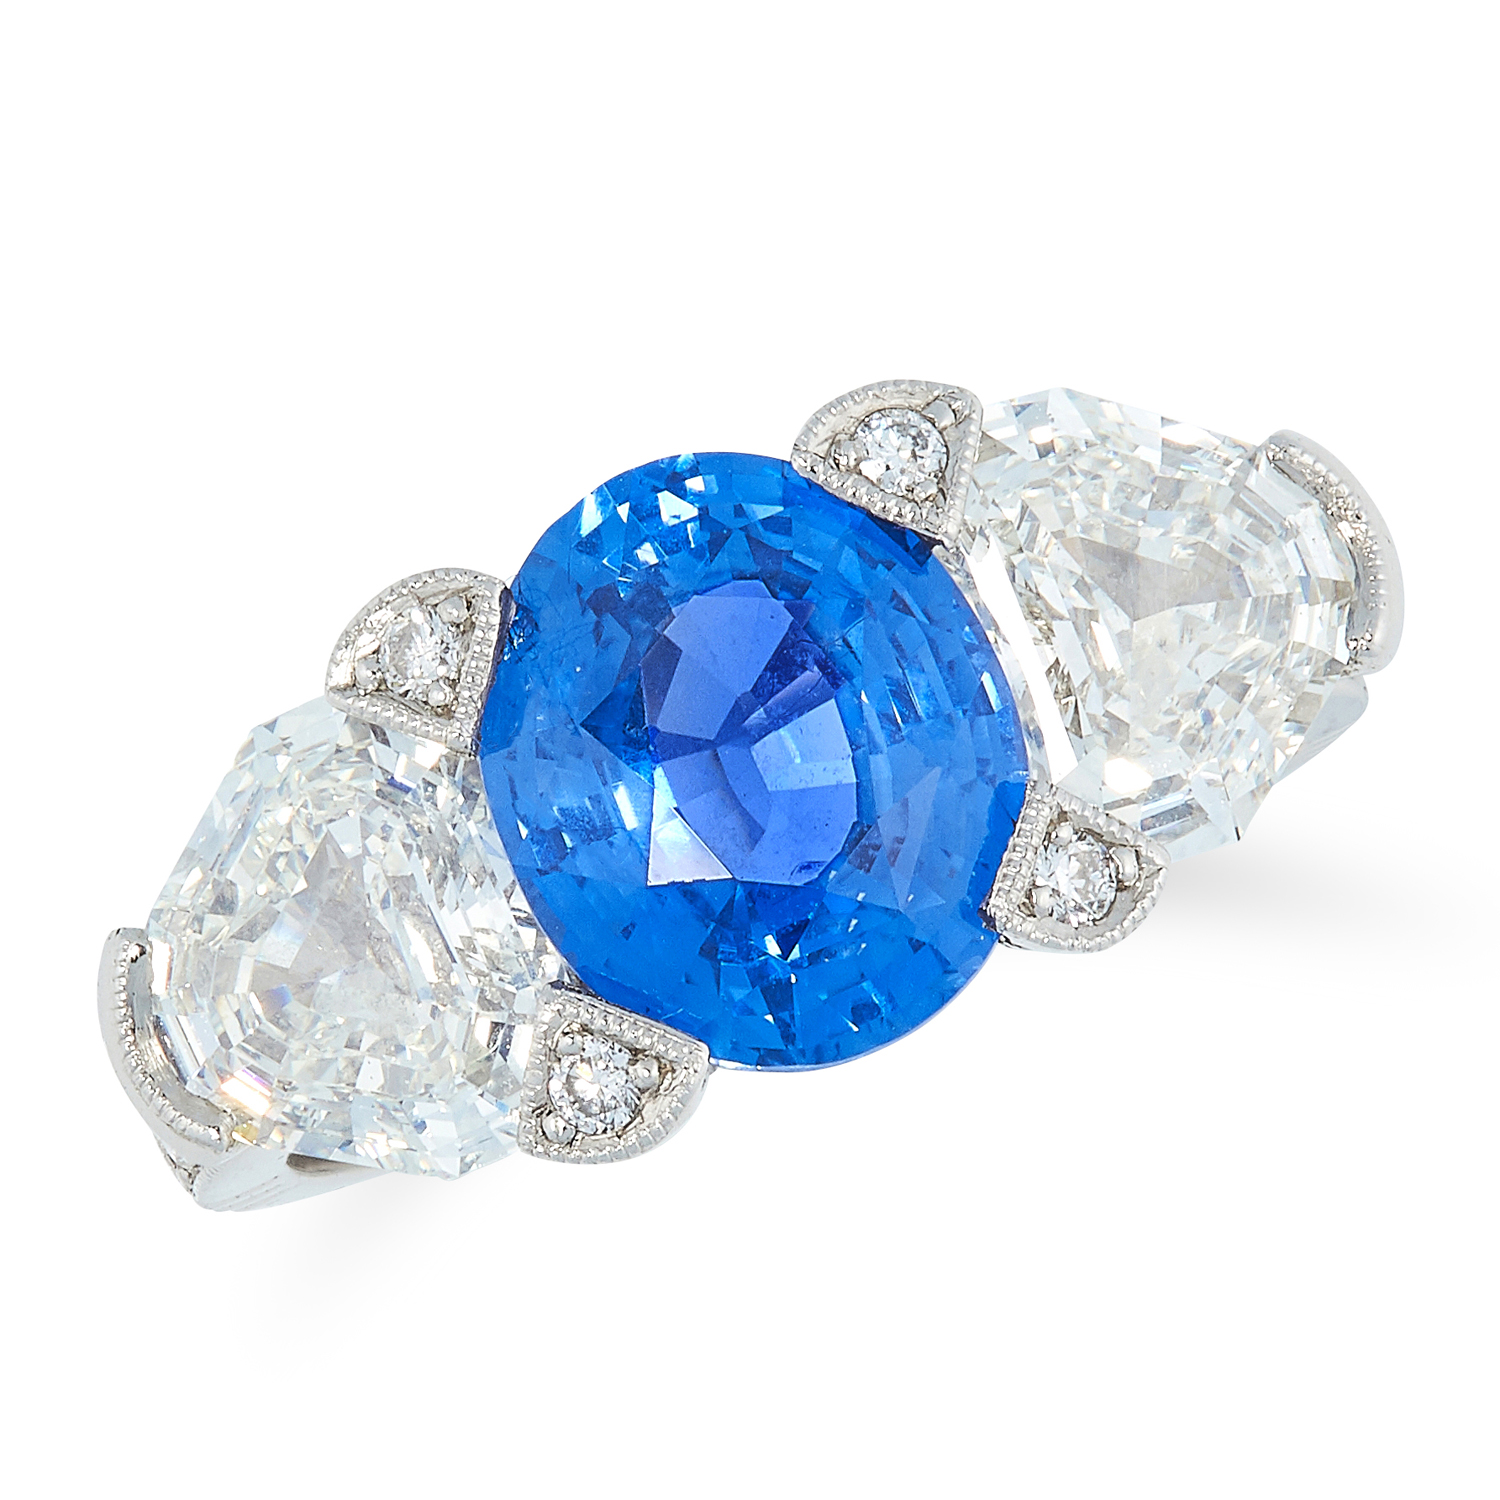 A CEYLON NO HEAT SAPPHIRE AND DIAMOND THREE STONE RING set with an oval cut sapphire of 3.80